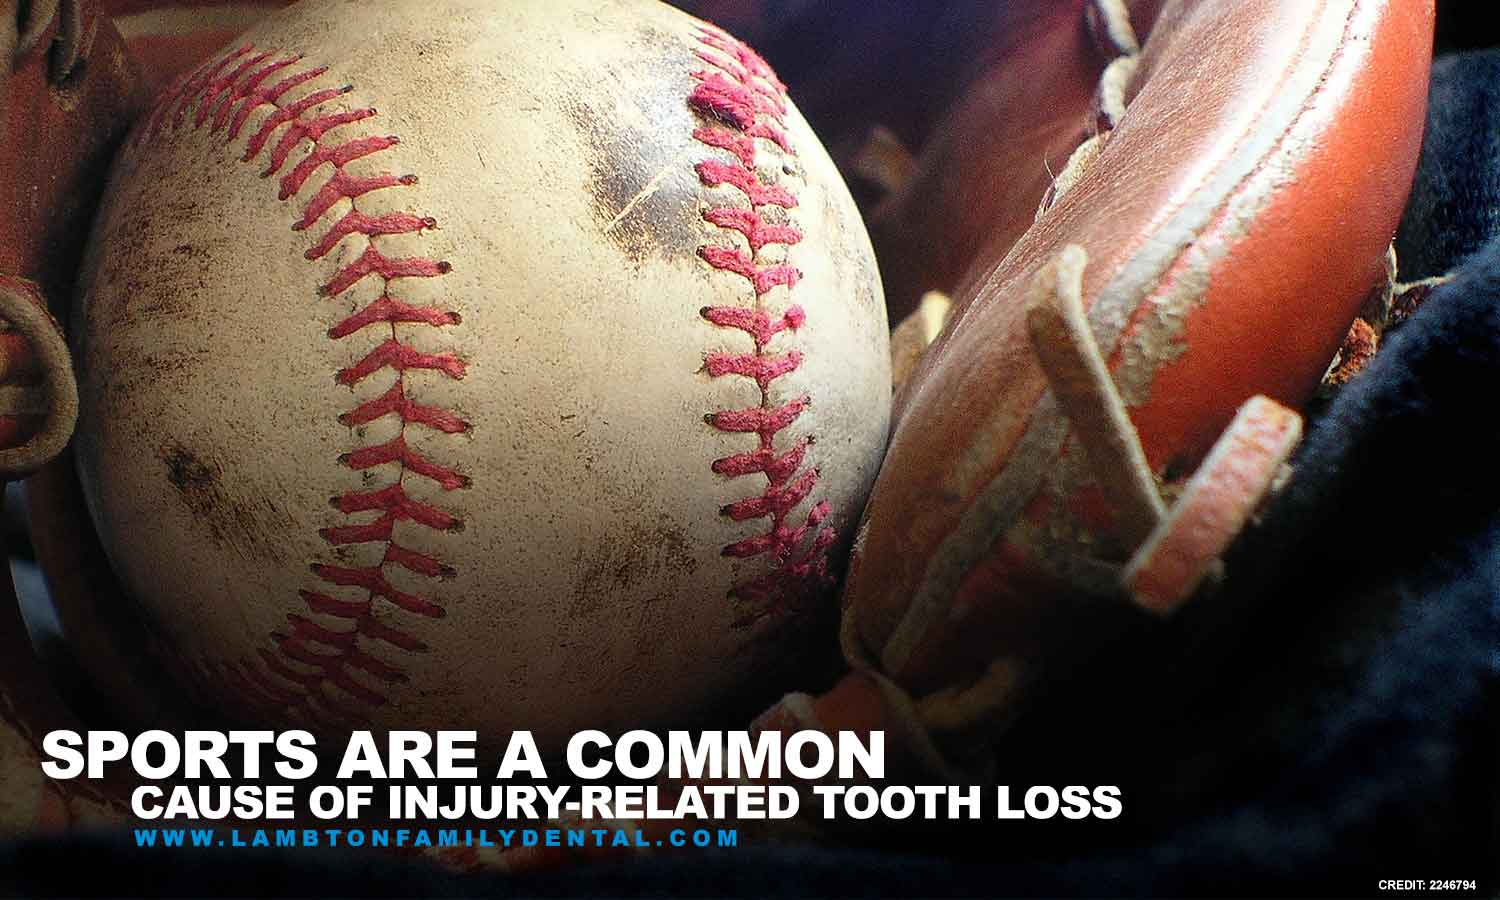 Sports are a common cause of injury-related